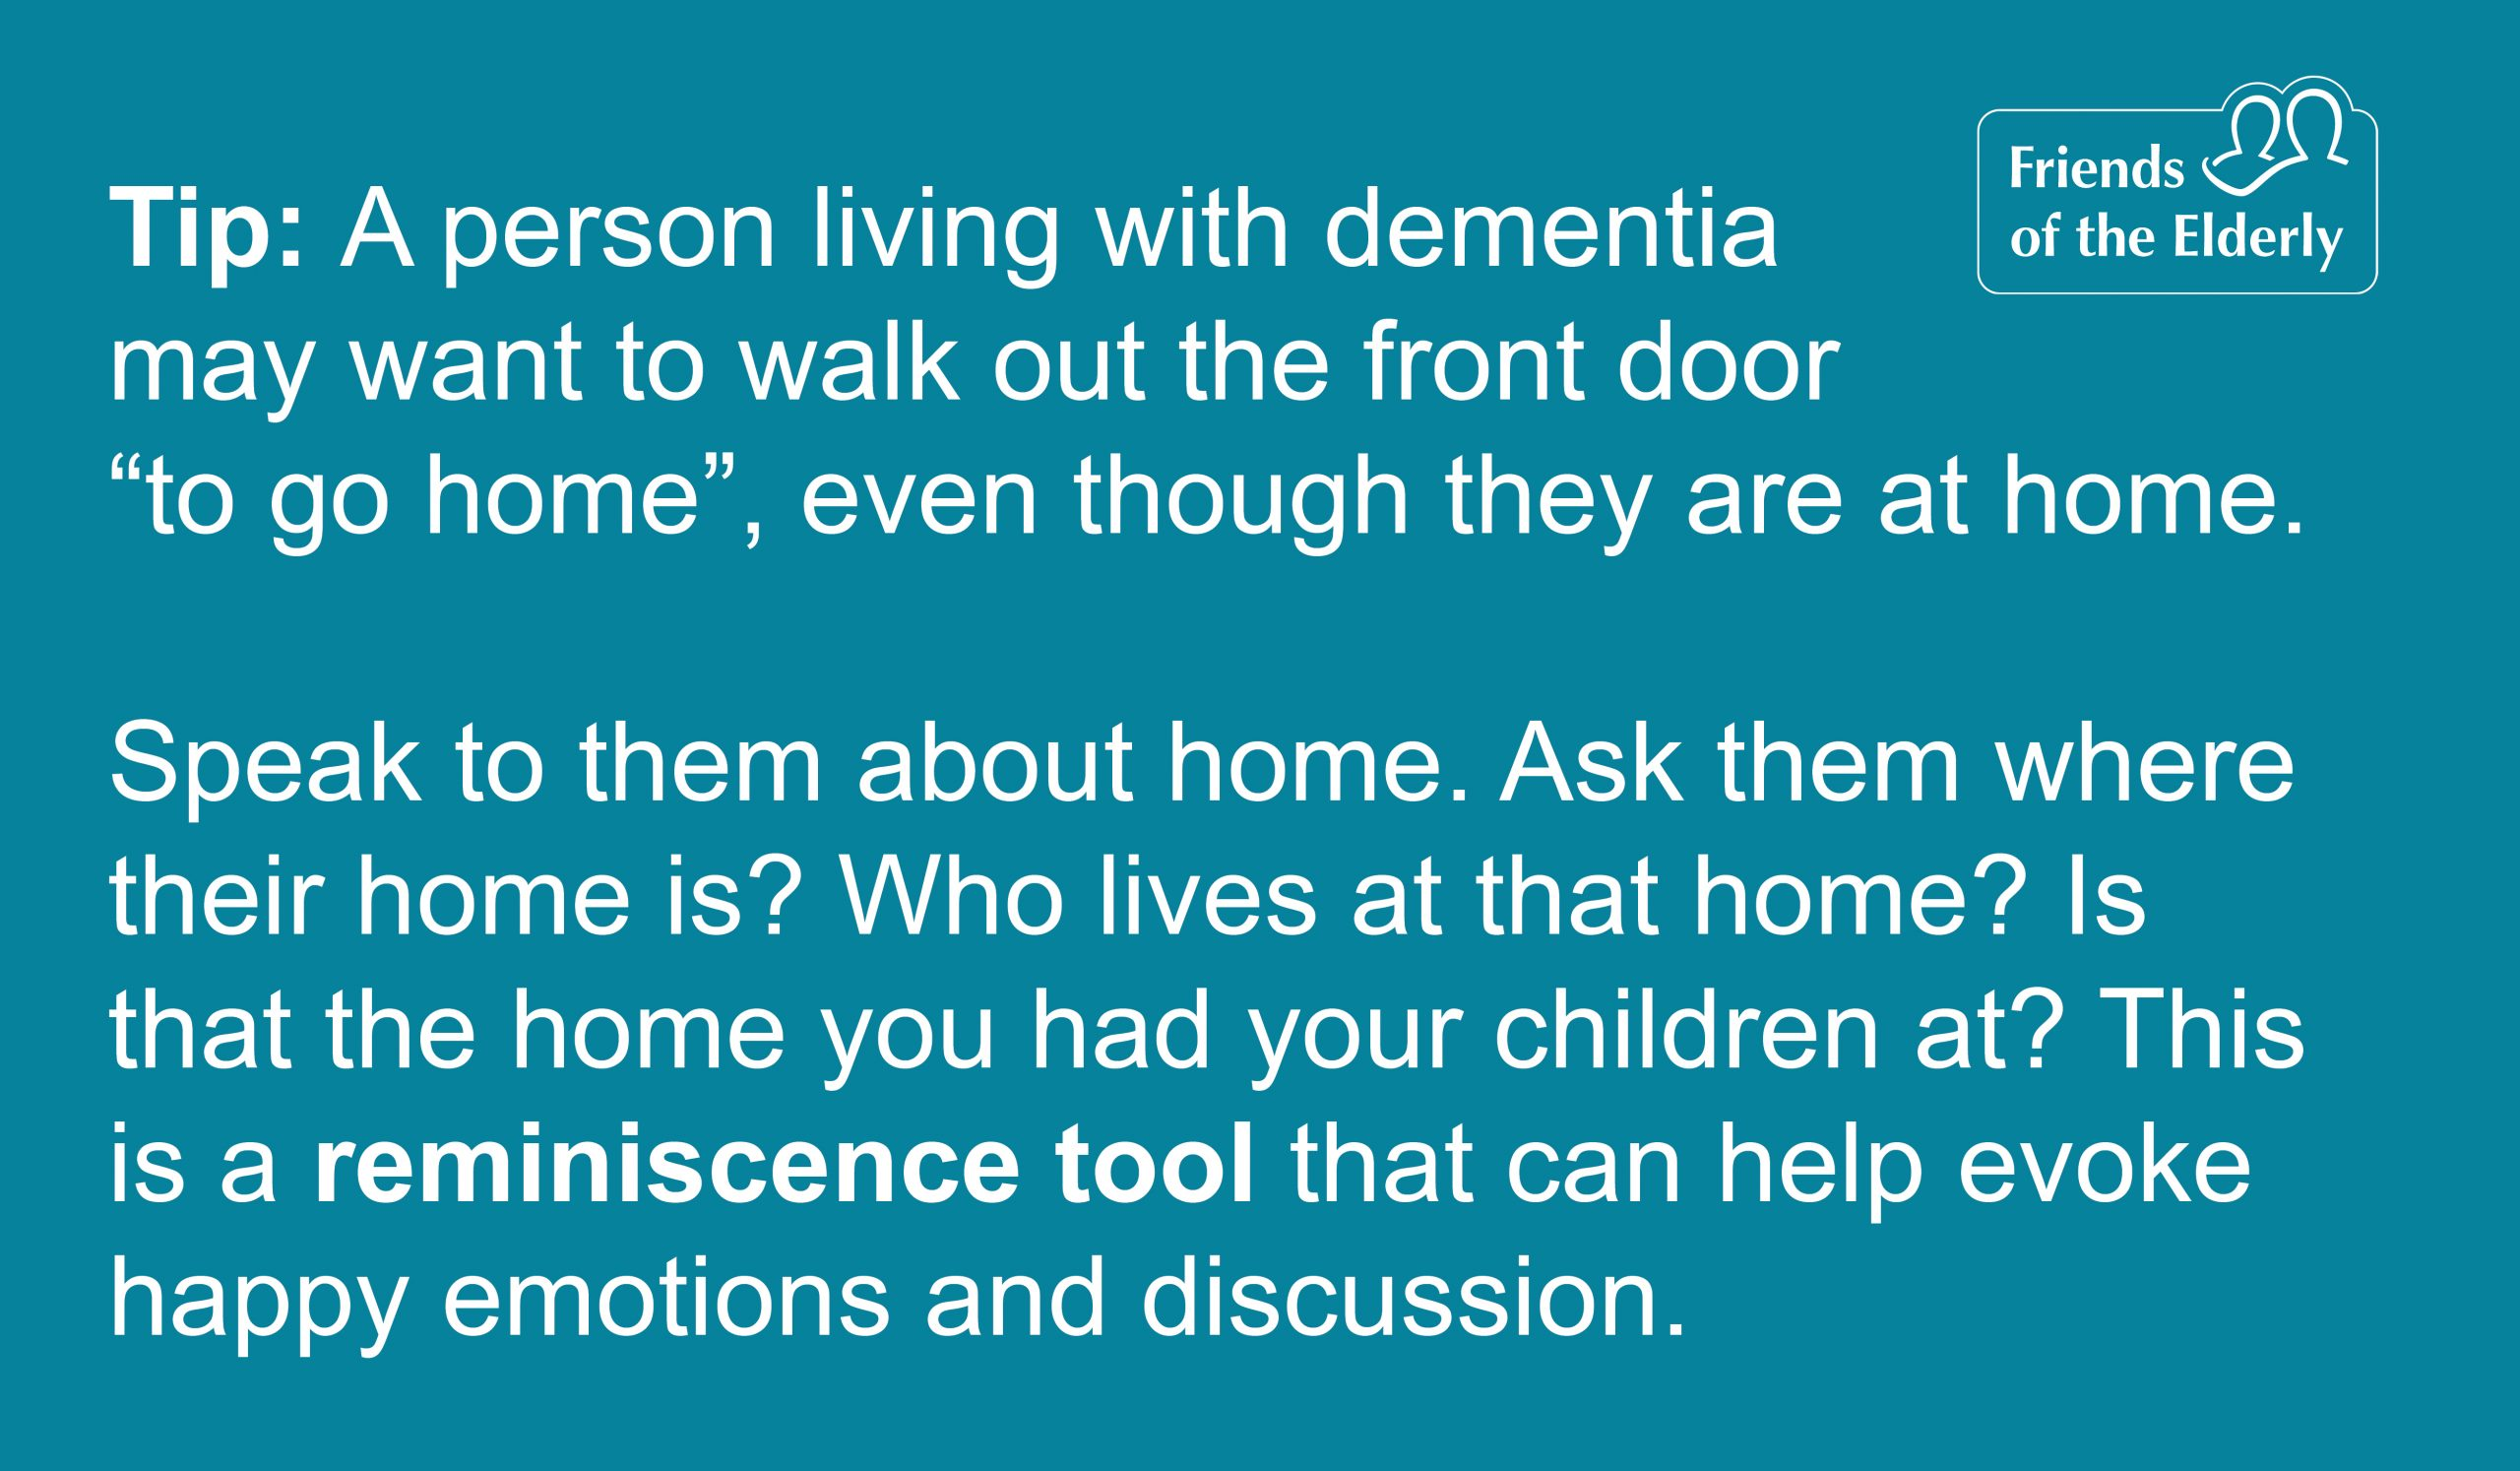 Tip 1:Reminiscence tools. A person living with dementia may want to walk out the front door or 'go home', even though they are at home. Speak to them about home. Ask them where their home is ? Who lives at that home? Is that the home you had your children at? This is a reminiscence tool that can help evoke happy emotions and discussion.